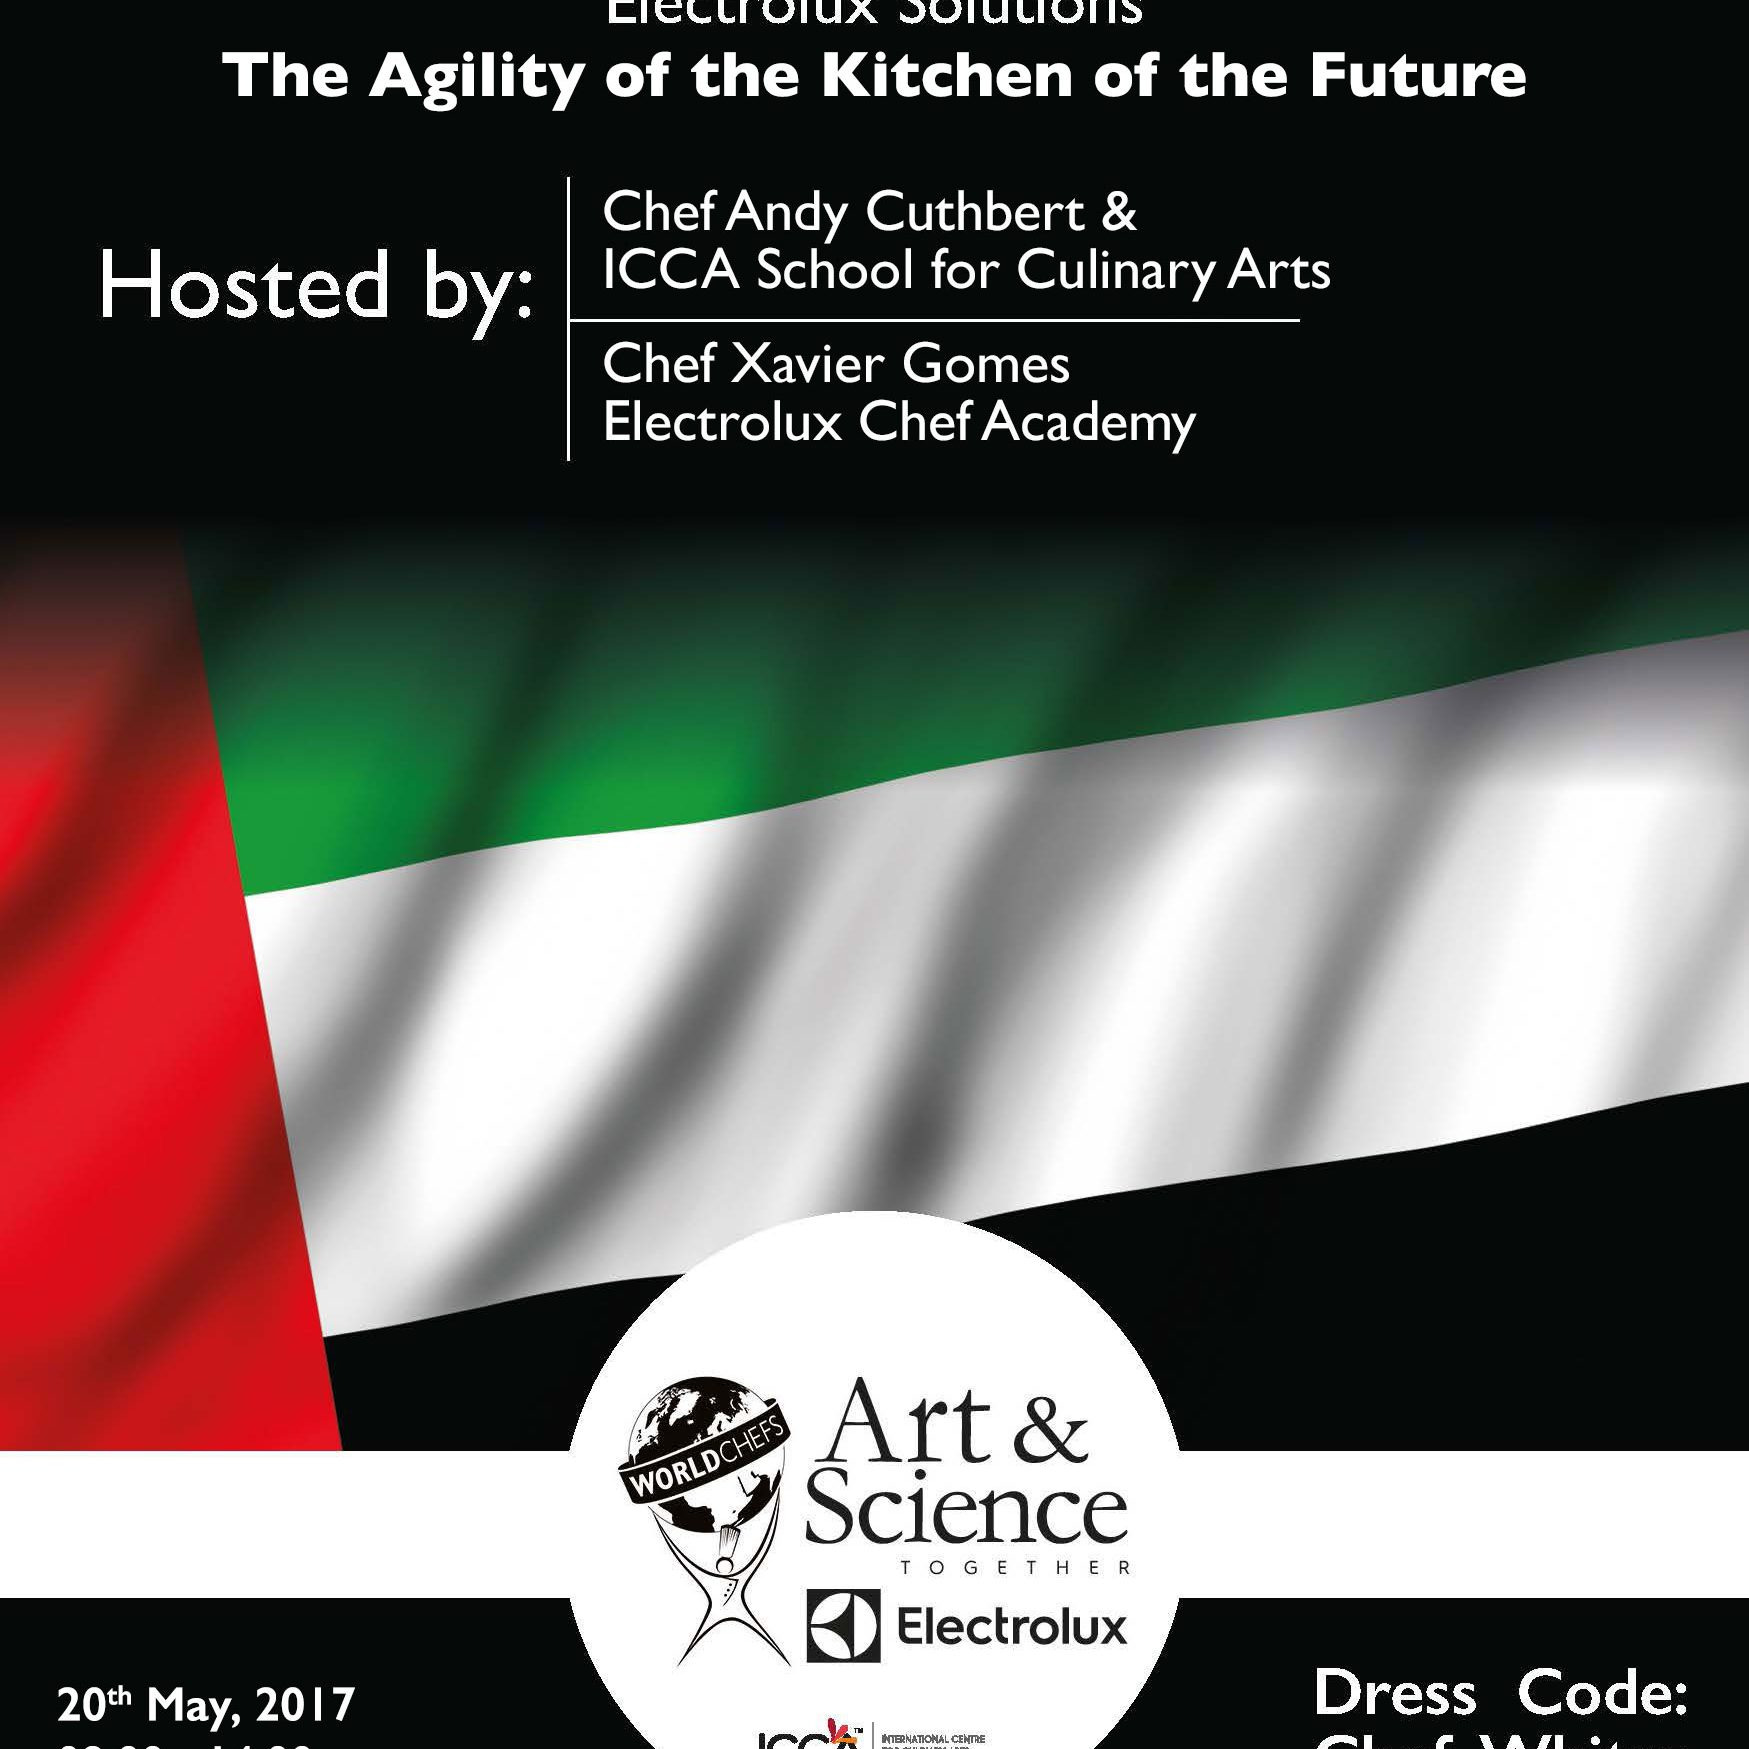 Art&Science the Agility of the Kitchen of the Future 20th May 2017